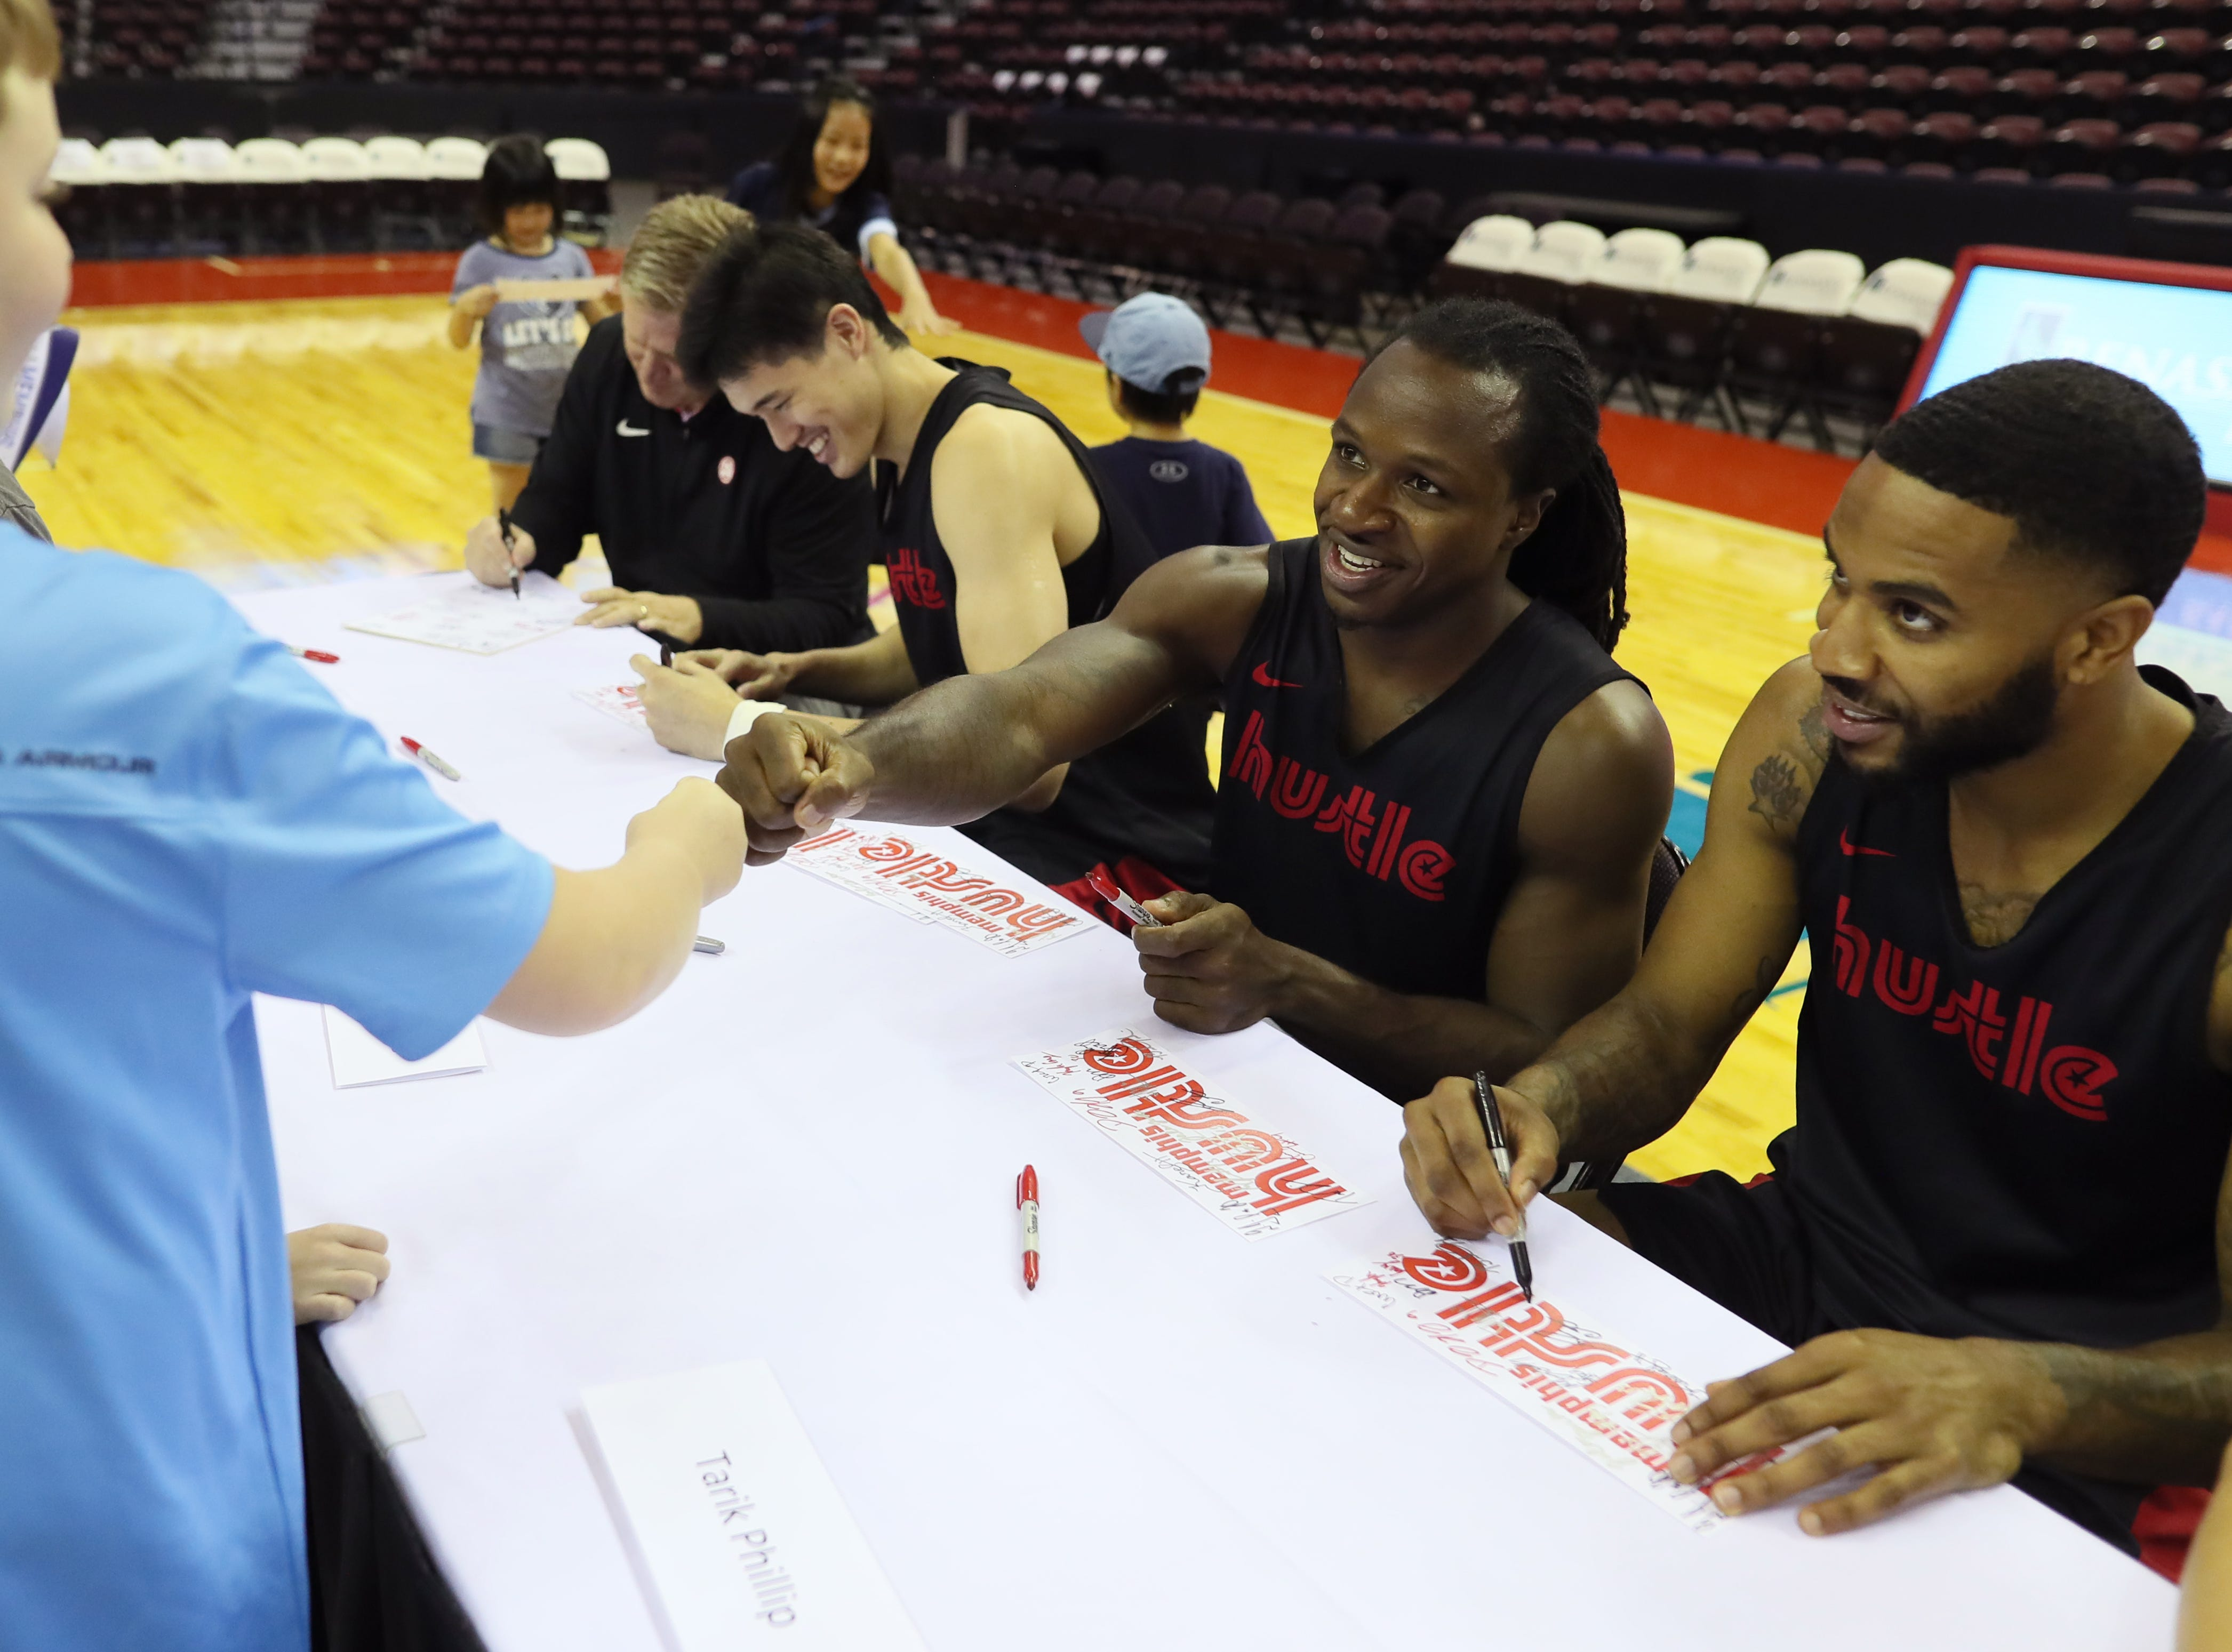 Memphis Hustle players Jay-R Strowbridge, center, and Tarik Phillip sign autographs for fans as they host Family Fun Day at the Landers Center on Sunday, Oct. 28, 2018.